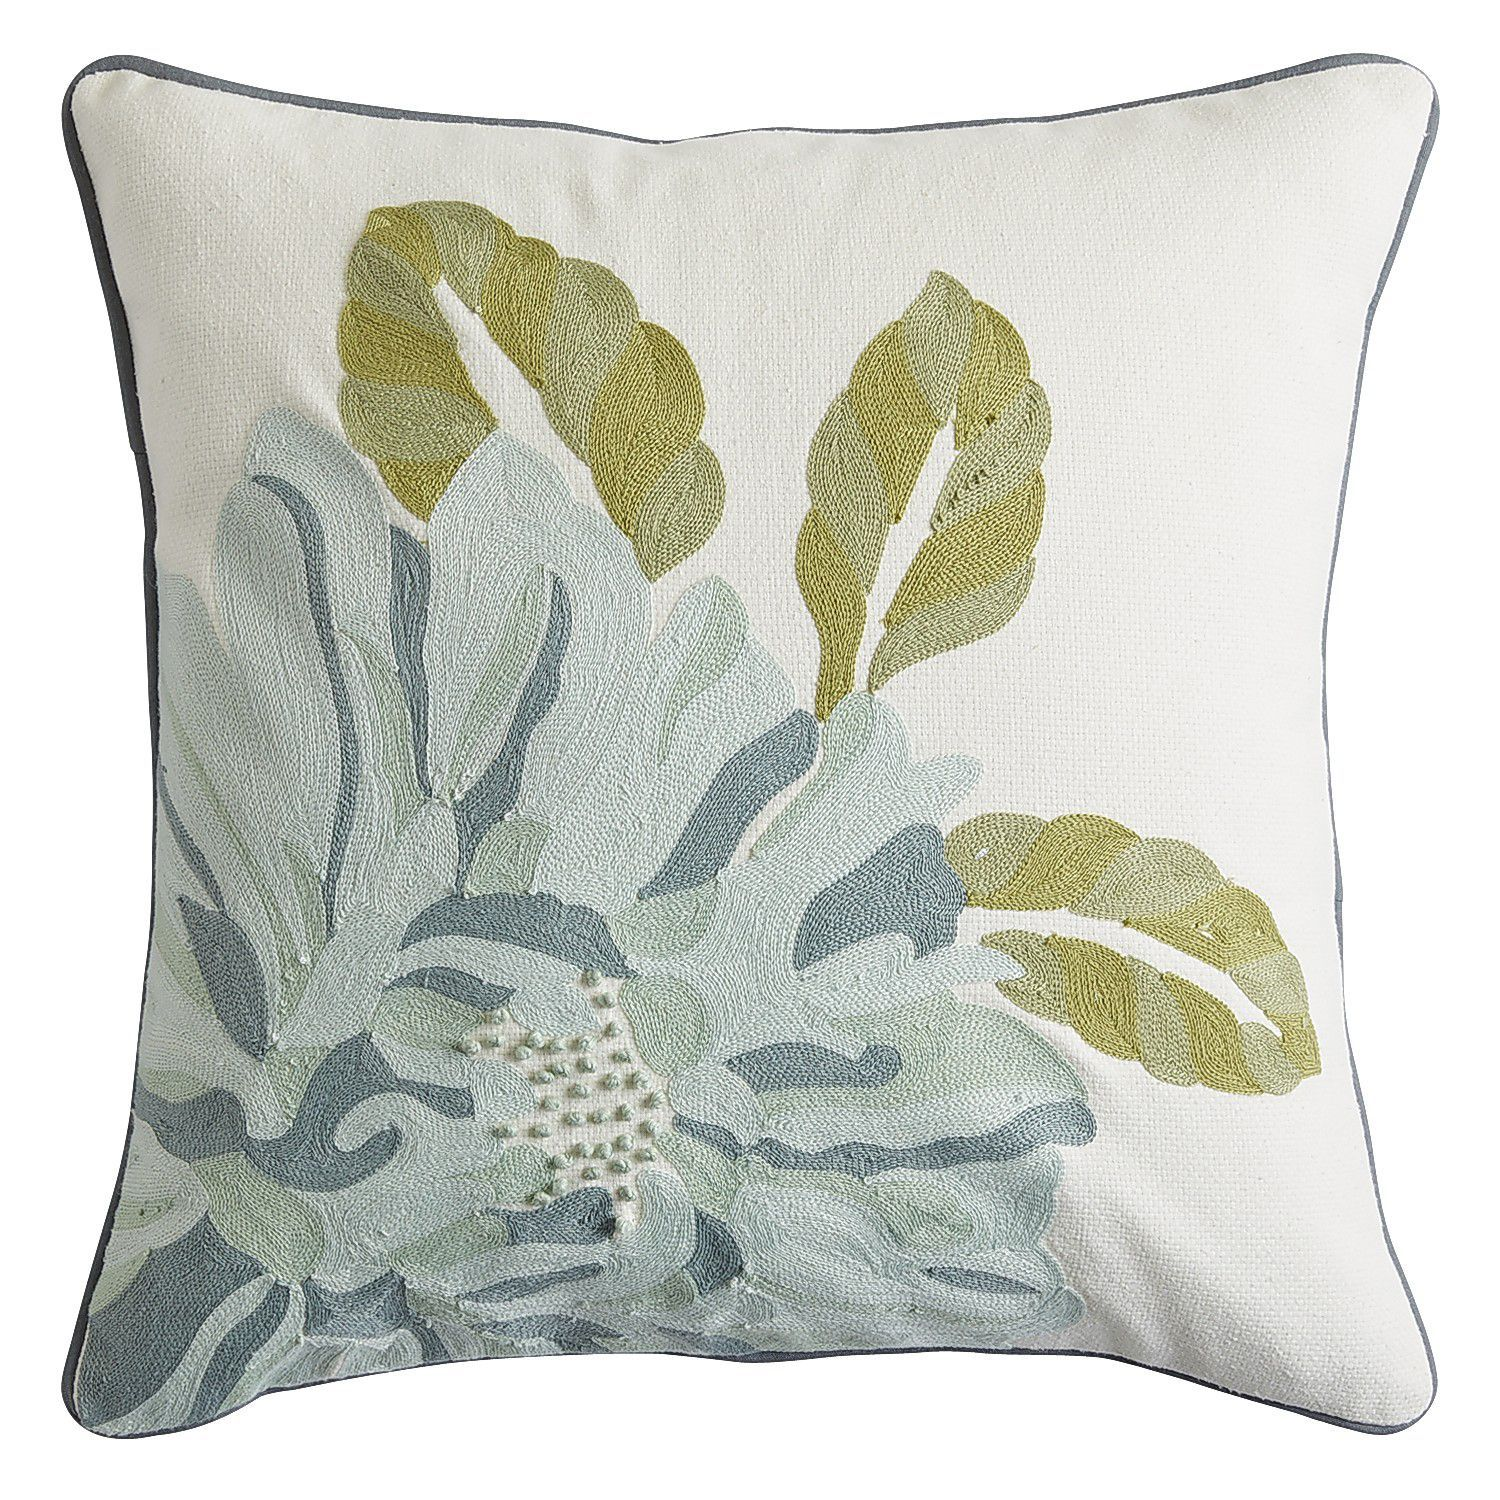 Throw Pillow: Spring meadow with green